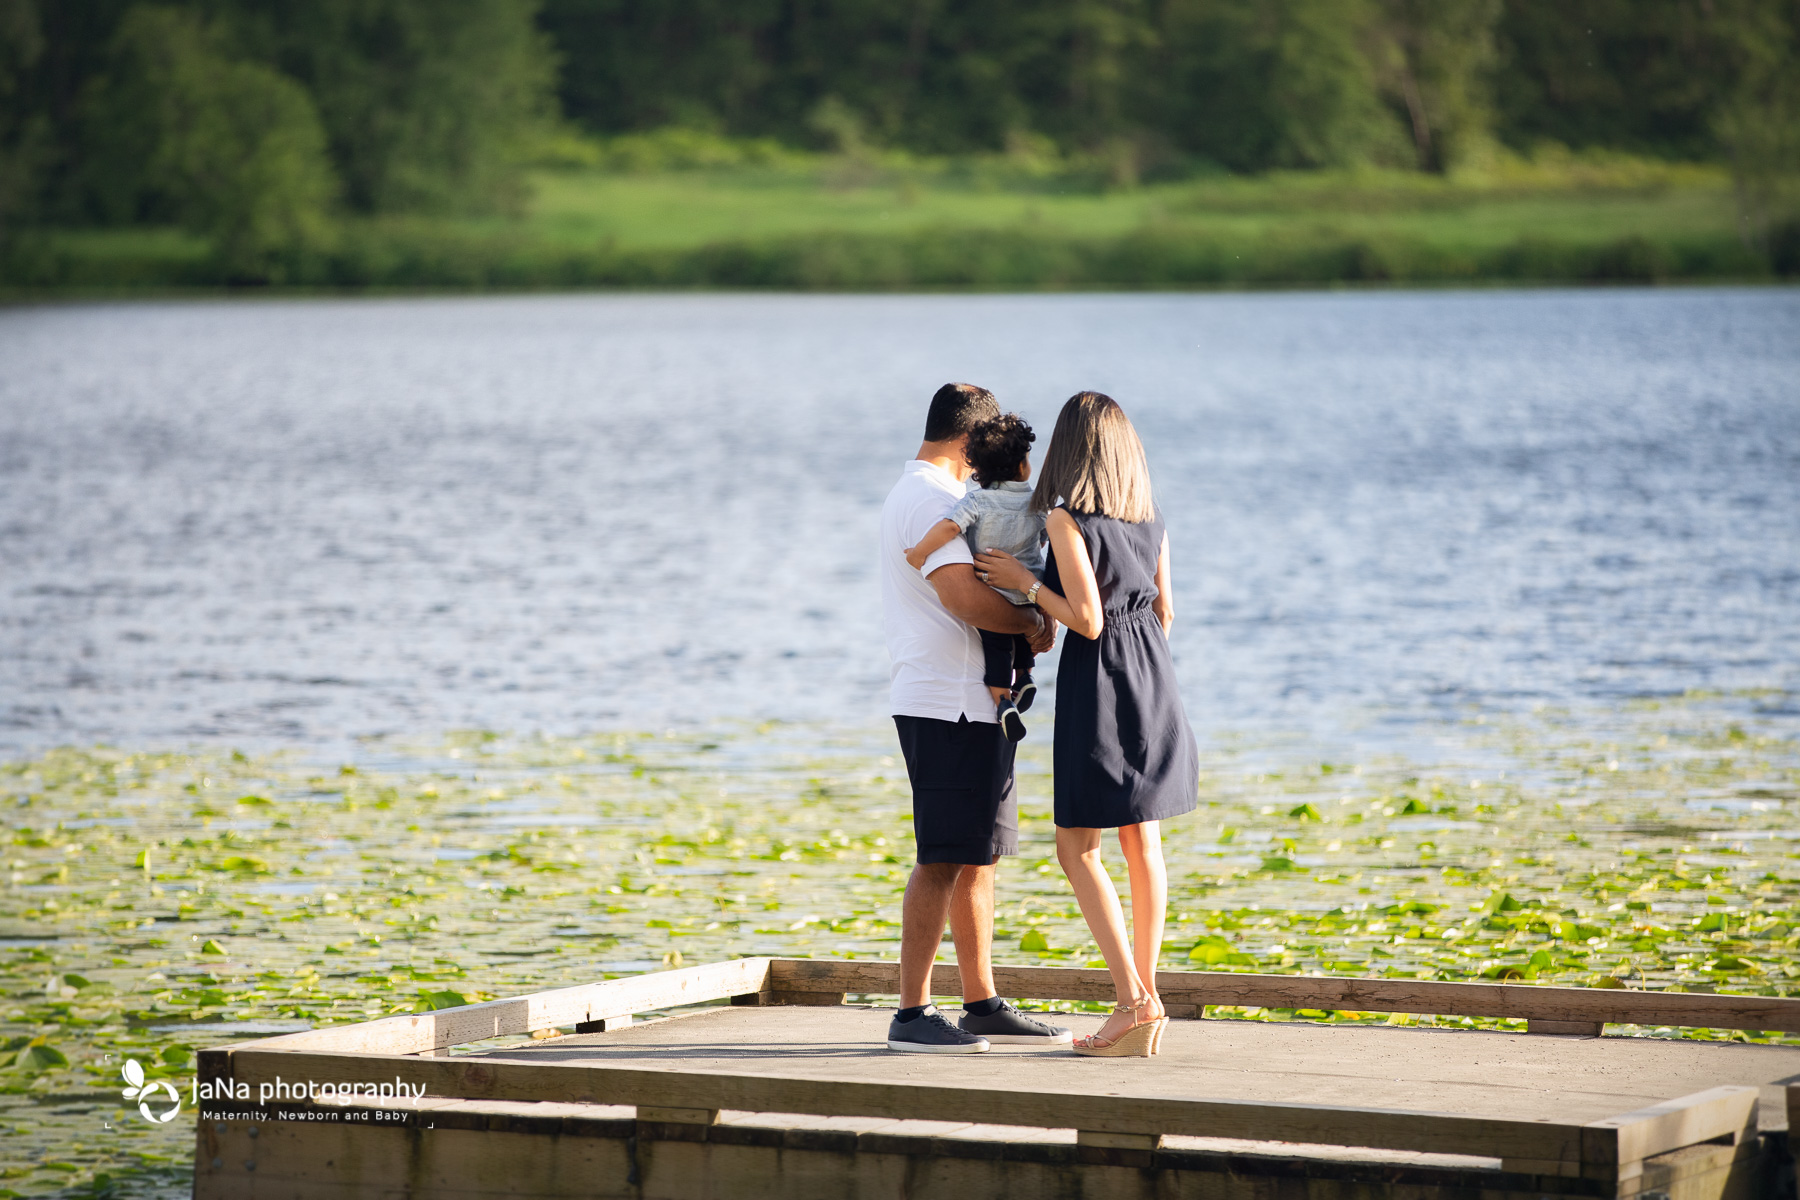 Vancouver outdoor family photography - deee lake park burnaby